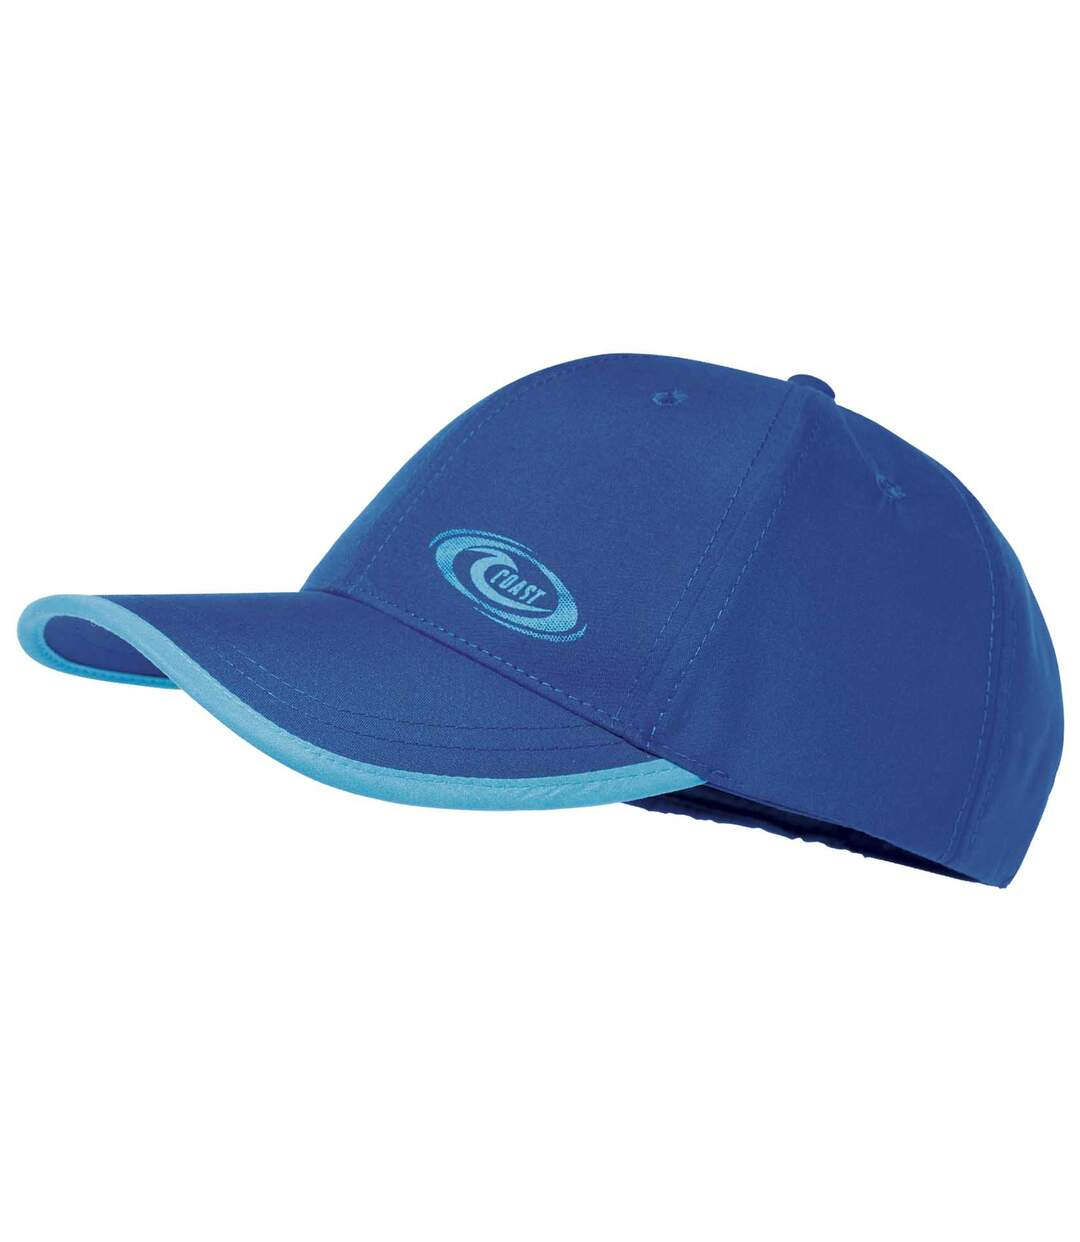 Men's Blue Seacoast Microfibre Baseball Cap